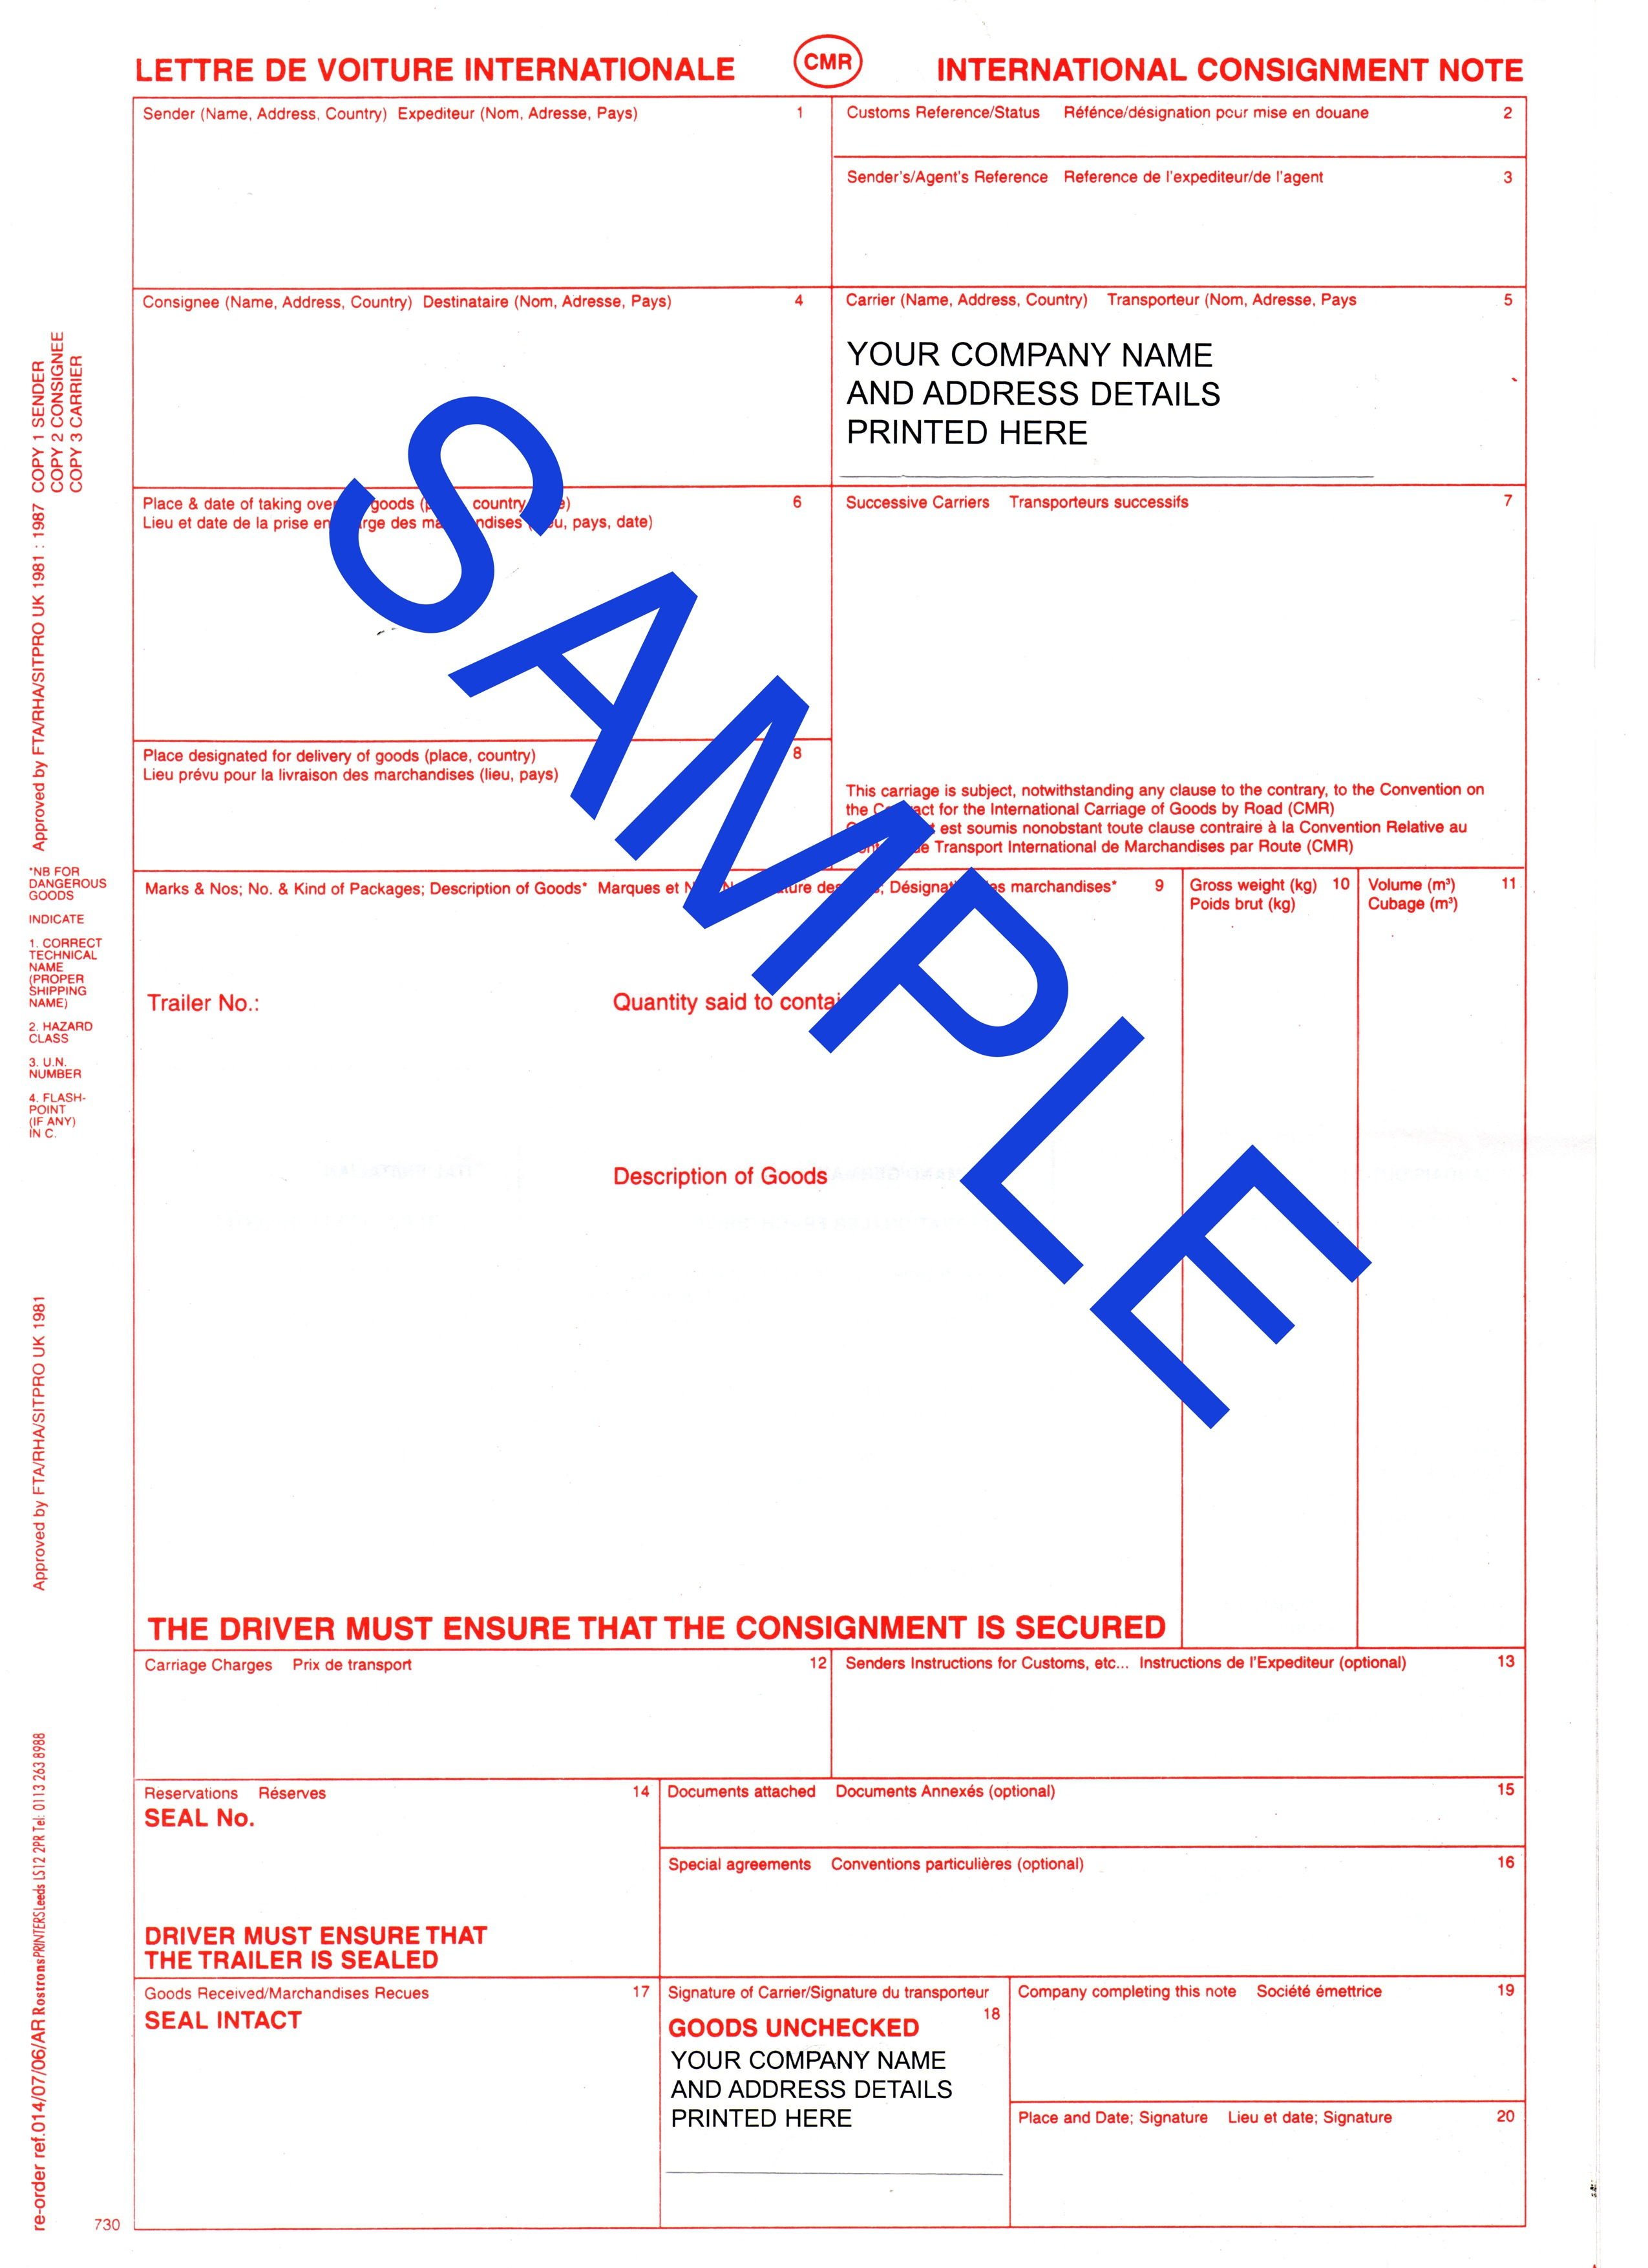 Bespoke CMR Forms- International Consignment Notes (100 sets)